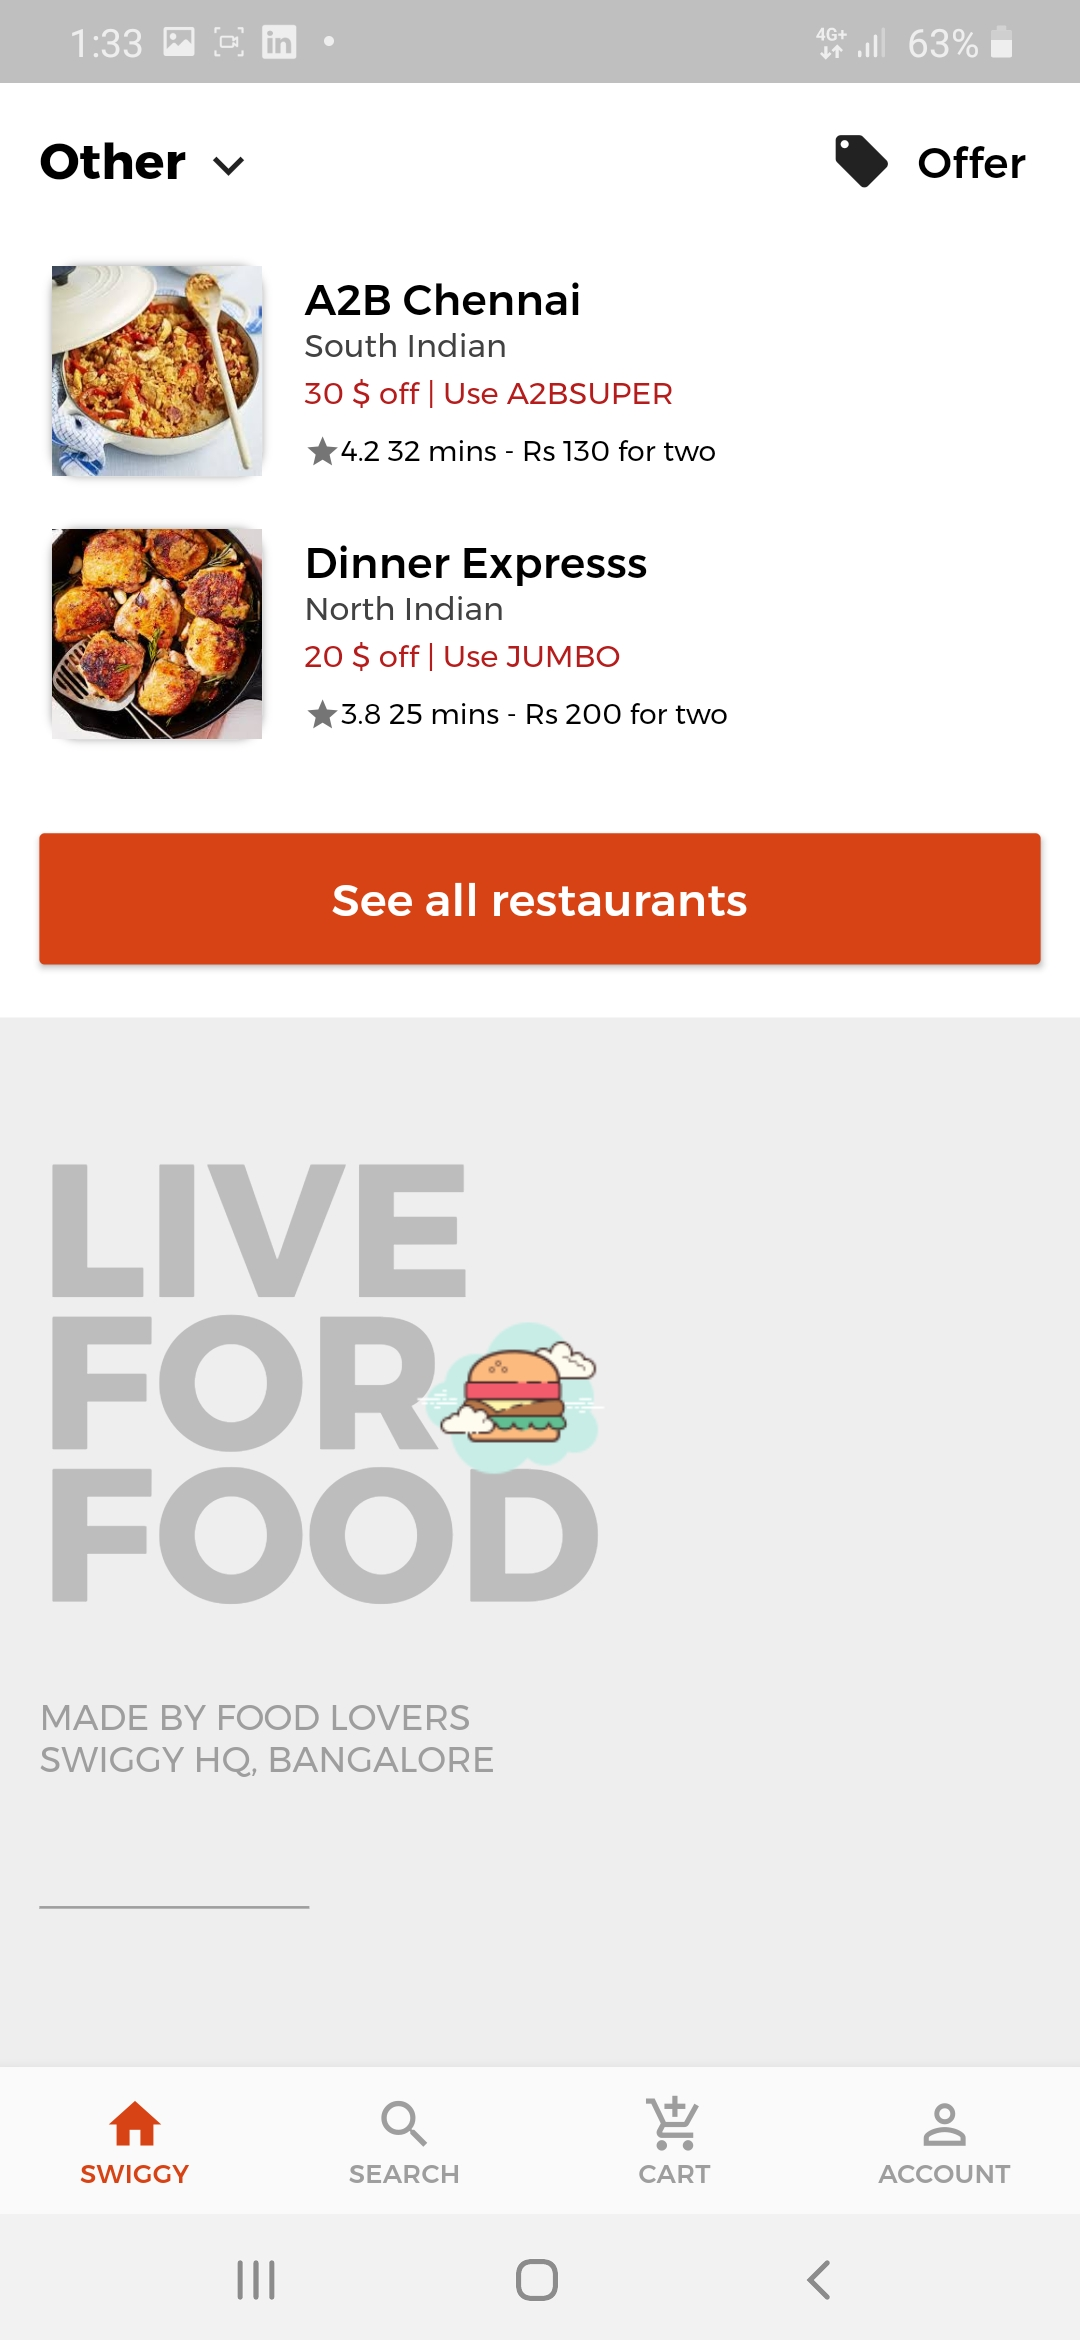 A UI clone of a famous food ordering app called Swiggy built using Flutter